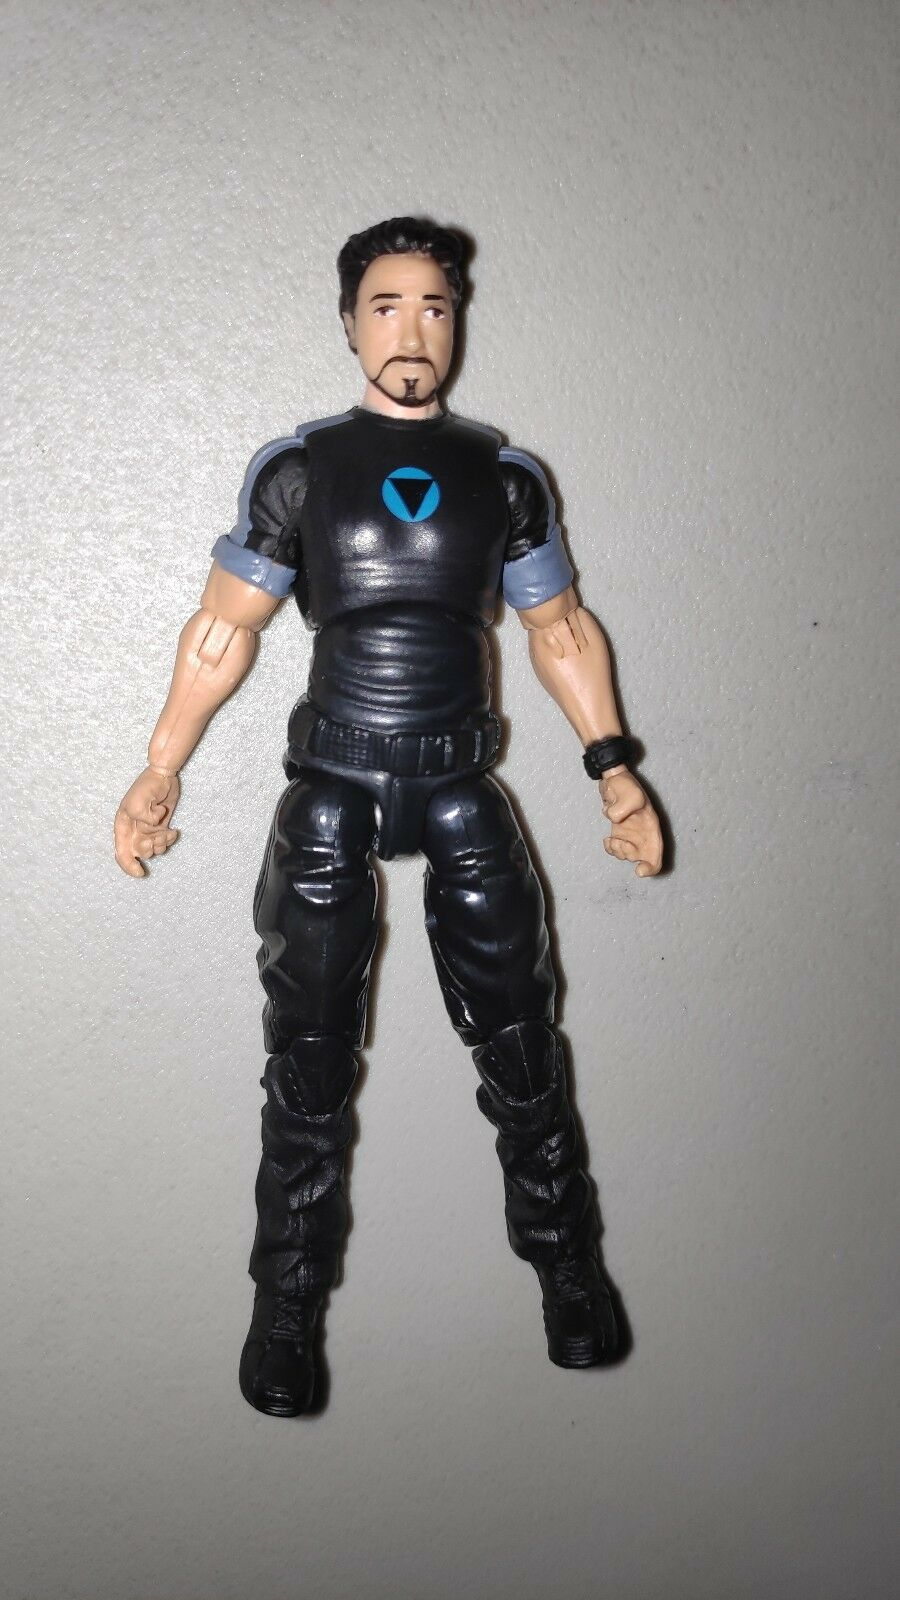 Marvel - universum  iron man 3 tony stark hall of fame rstung hasbro 3,75